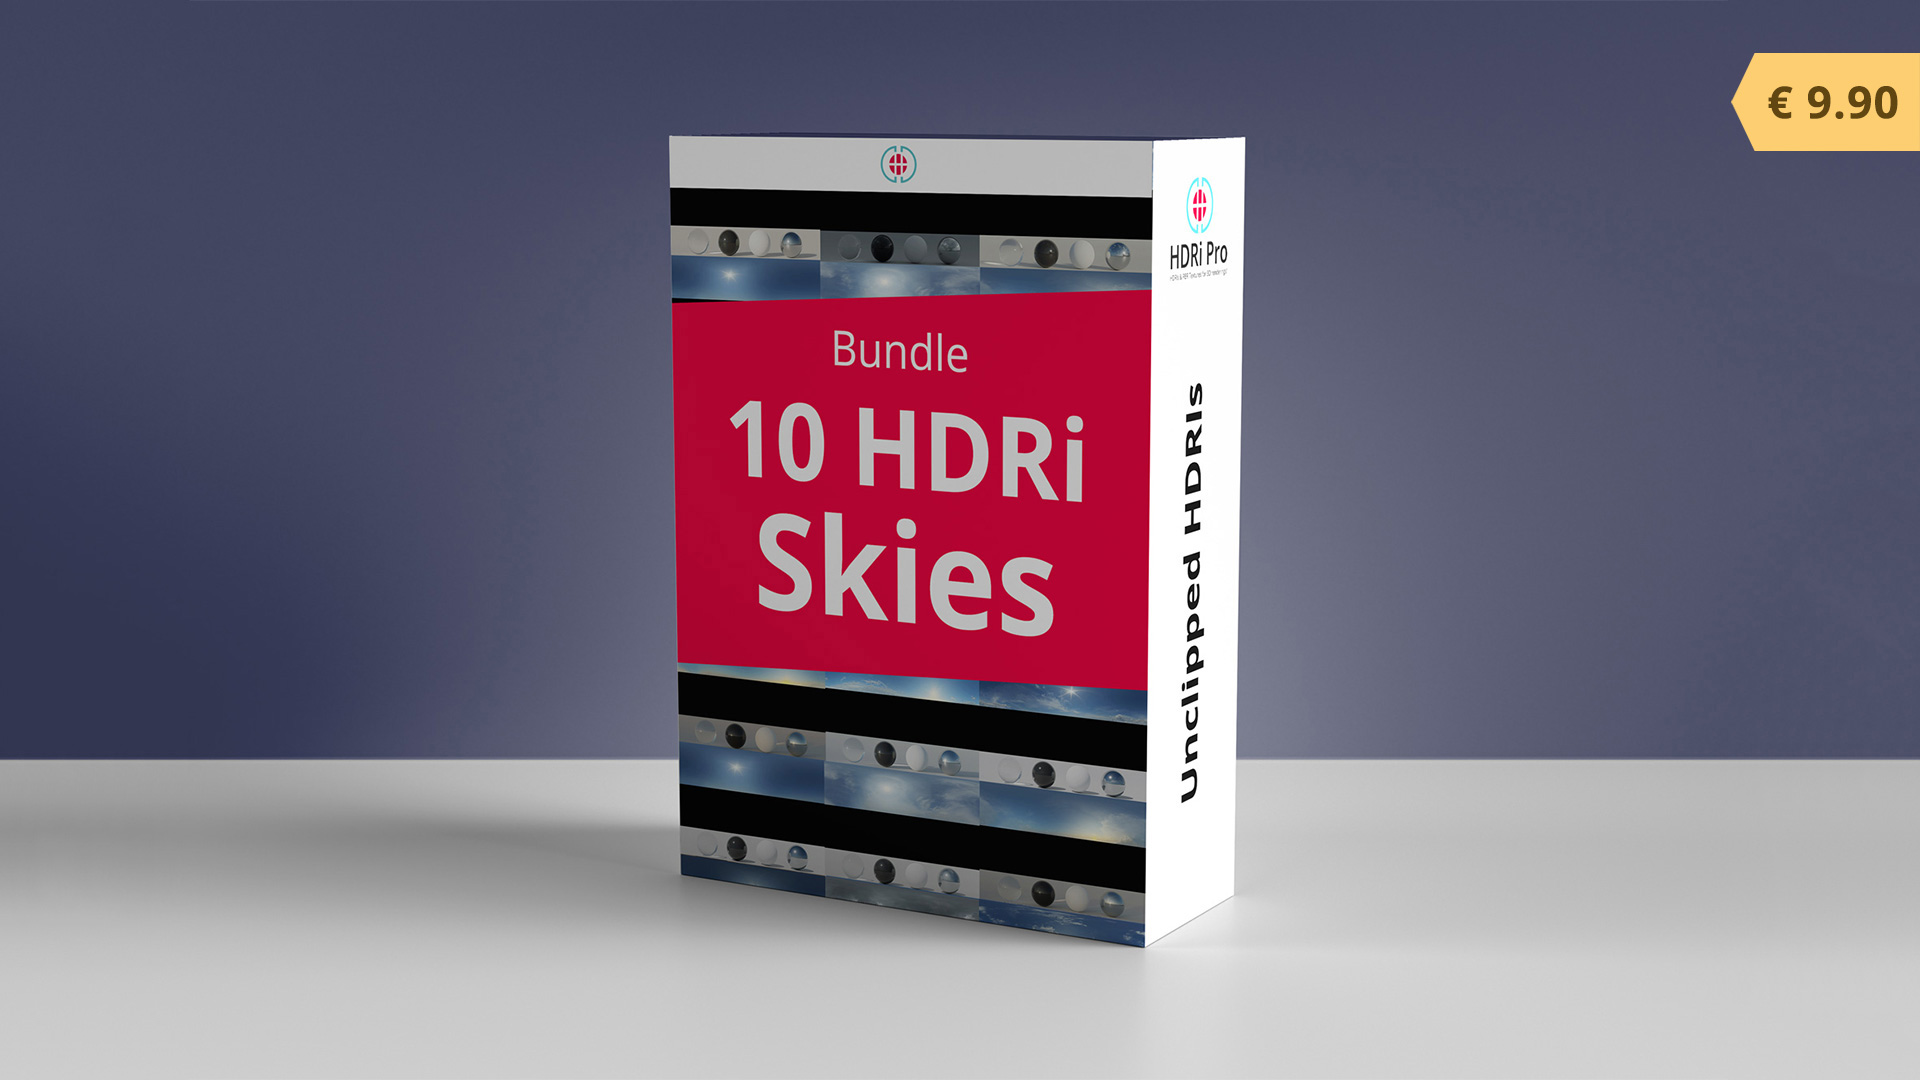 10 HDRIs Skies Bundle